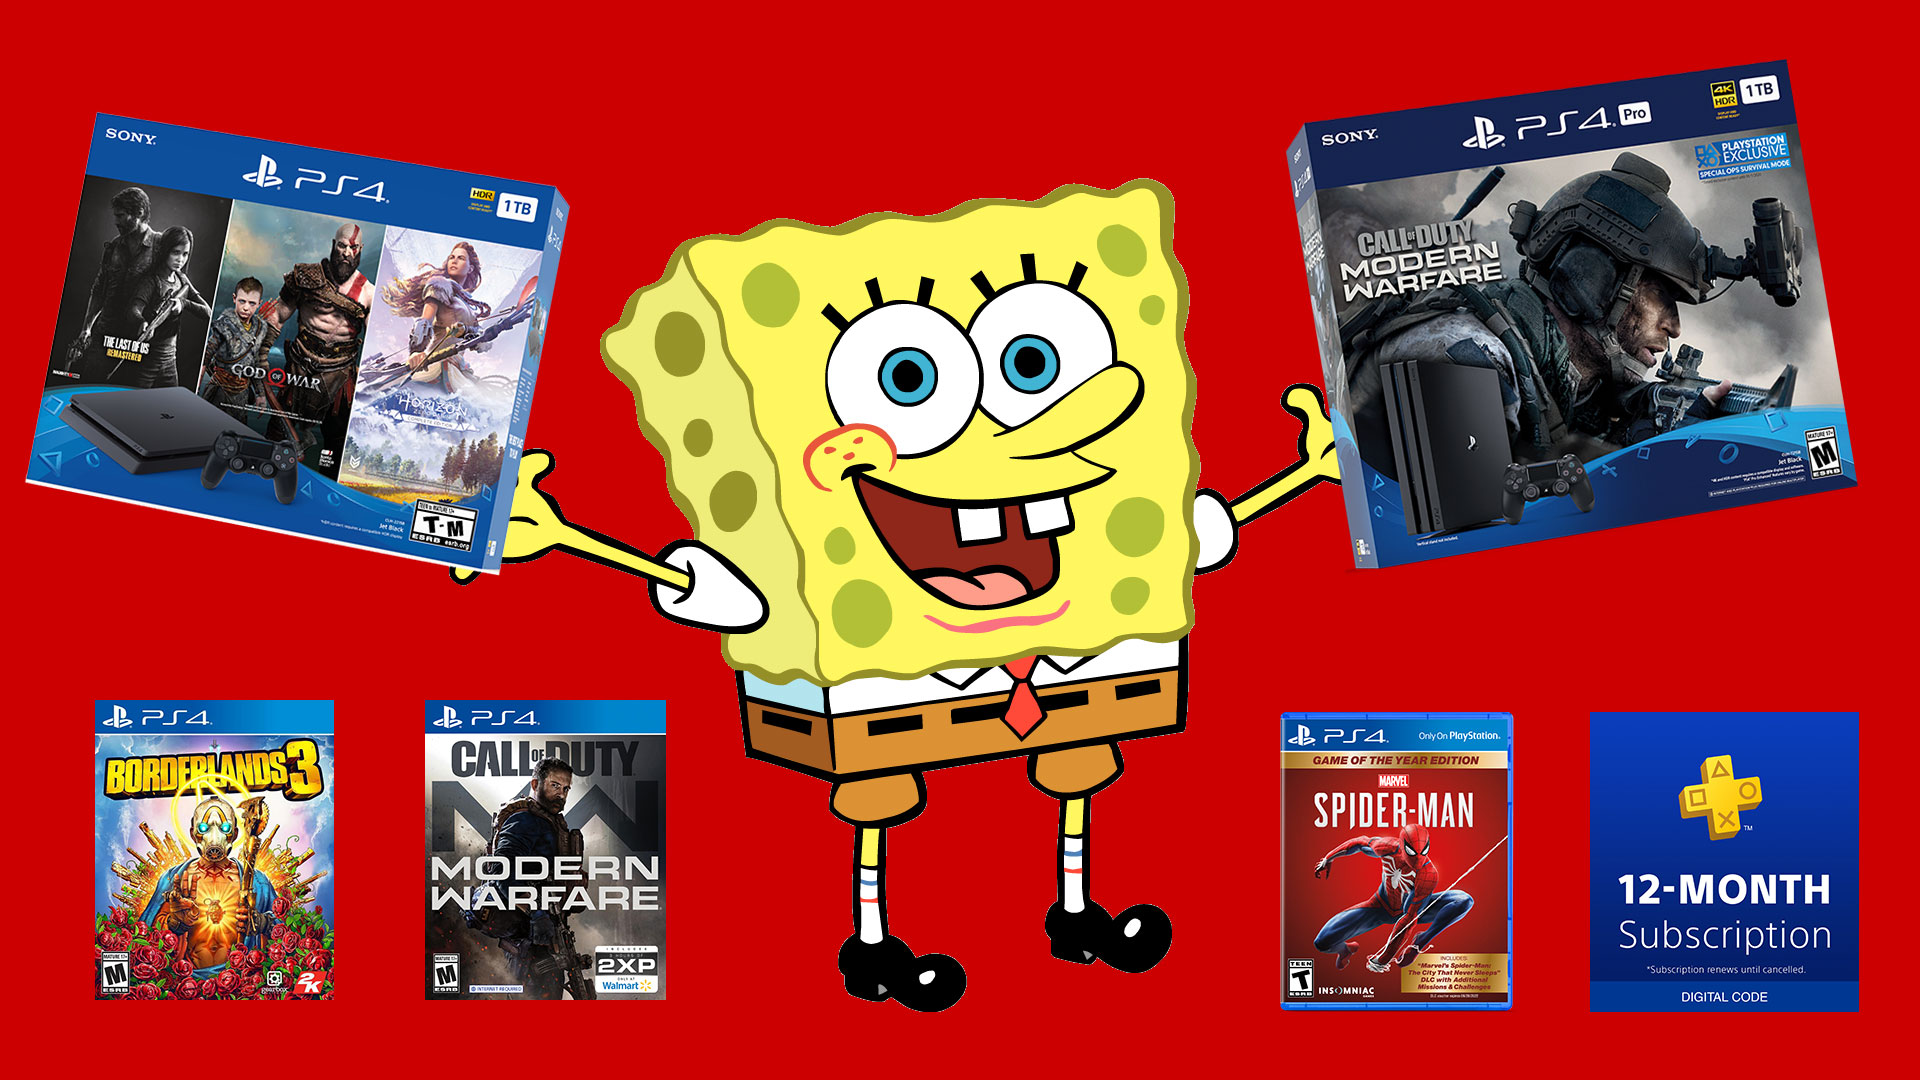 PlayStation 4 Black Friday deals still happening: cheap PS Plus, $100 off consoles, and games galore screenshot